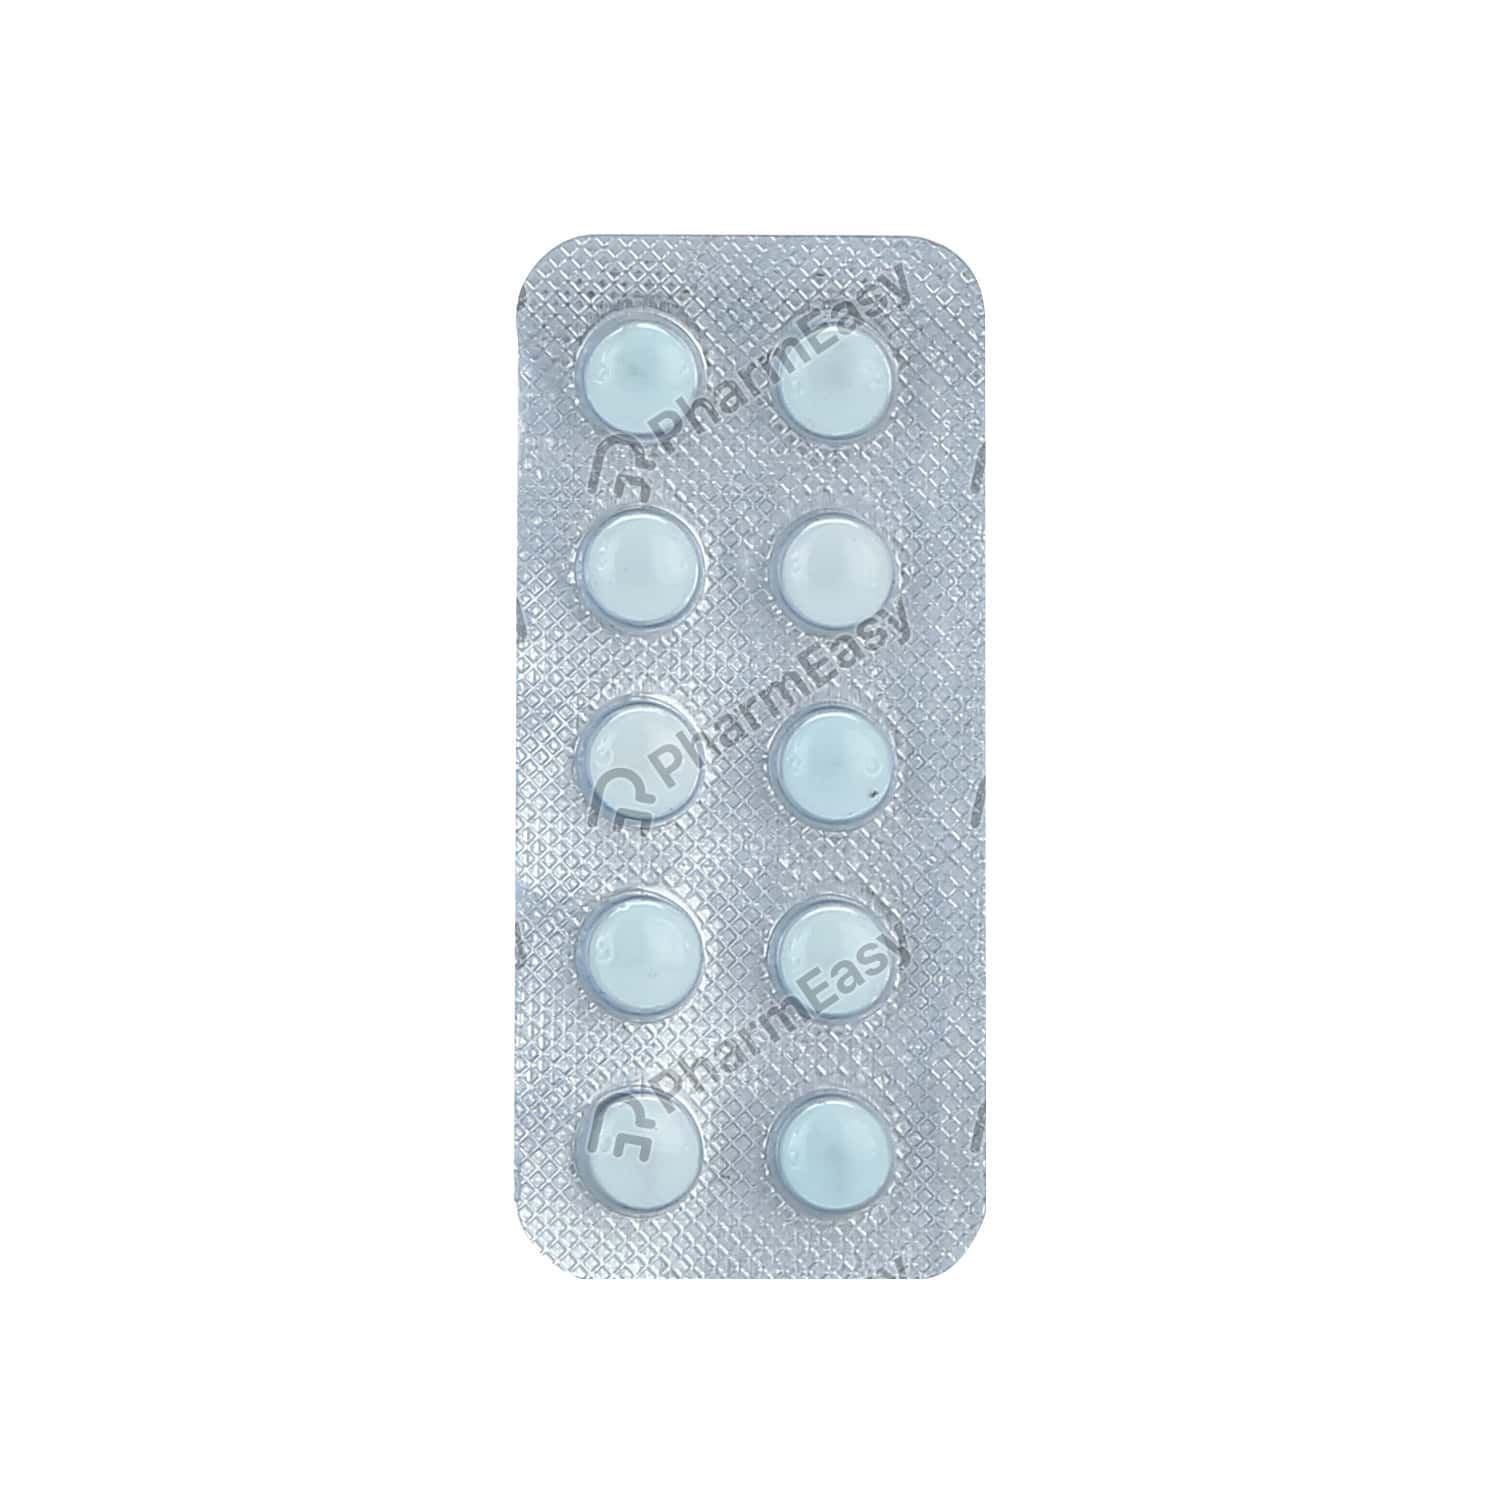 Cotrilo 10mg Tablet